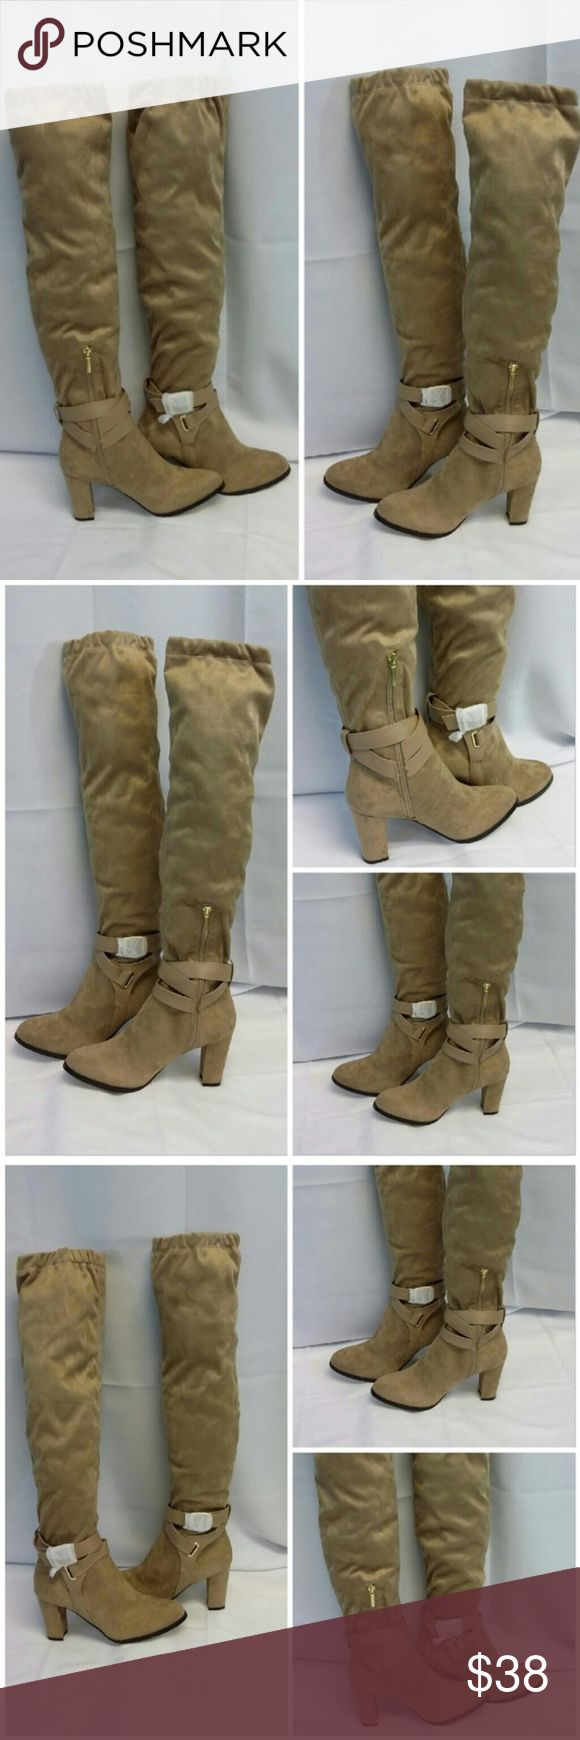 "NWT, In Box, EVE MENDES, Tall Heeled Boots size 7 NEW YORK & CO, EVE MENDES, NEW WITH TAG IN BOX, Taupe, very soft Velvet/Suede like man-made material, 3"" matching covered Heel, Boots NWT in Box, size 7, 3 hole adjustable ankle wrap with gold tone buckle, belt loop back center above heel, 9"" zipper with 1"" gold tone zipper tab, 19 1/2"" from heel to top of boot on calf, 7 1/2"" wide calf laying flat or 15"" circumference, style name Corso. ADD TO A BUNDLE! 30% Automatically Discounted on all…"